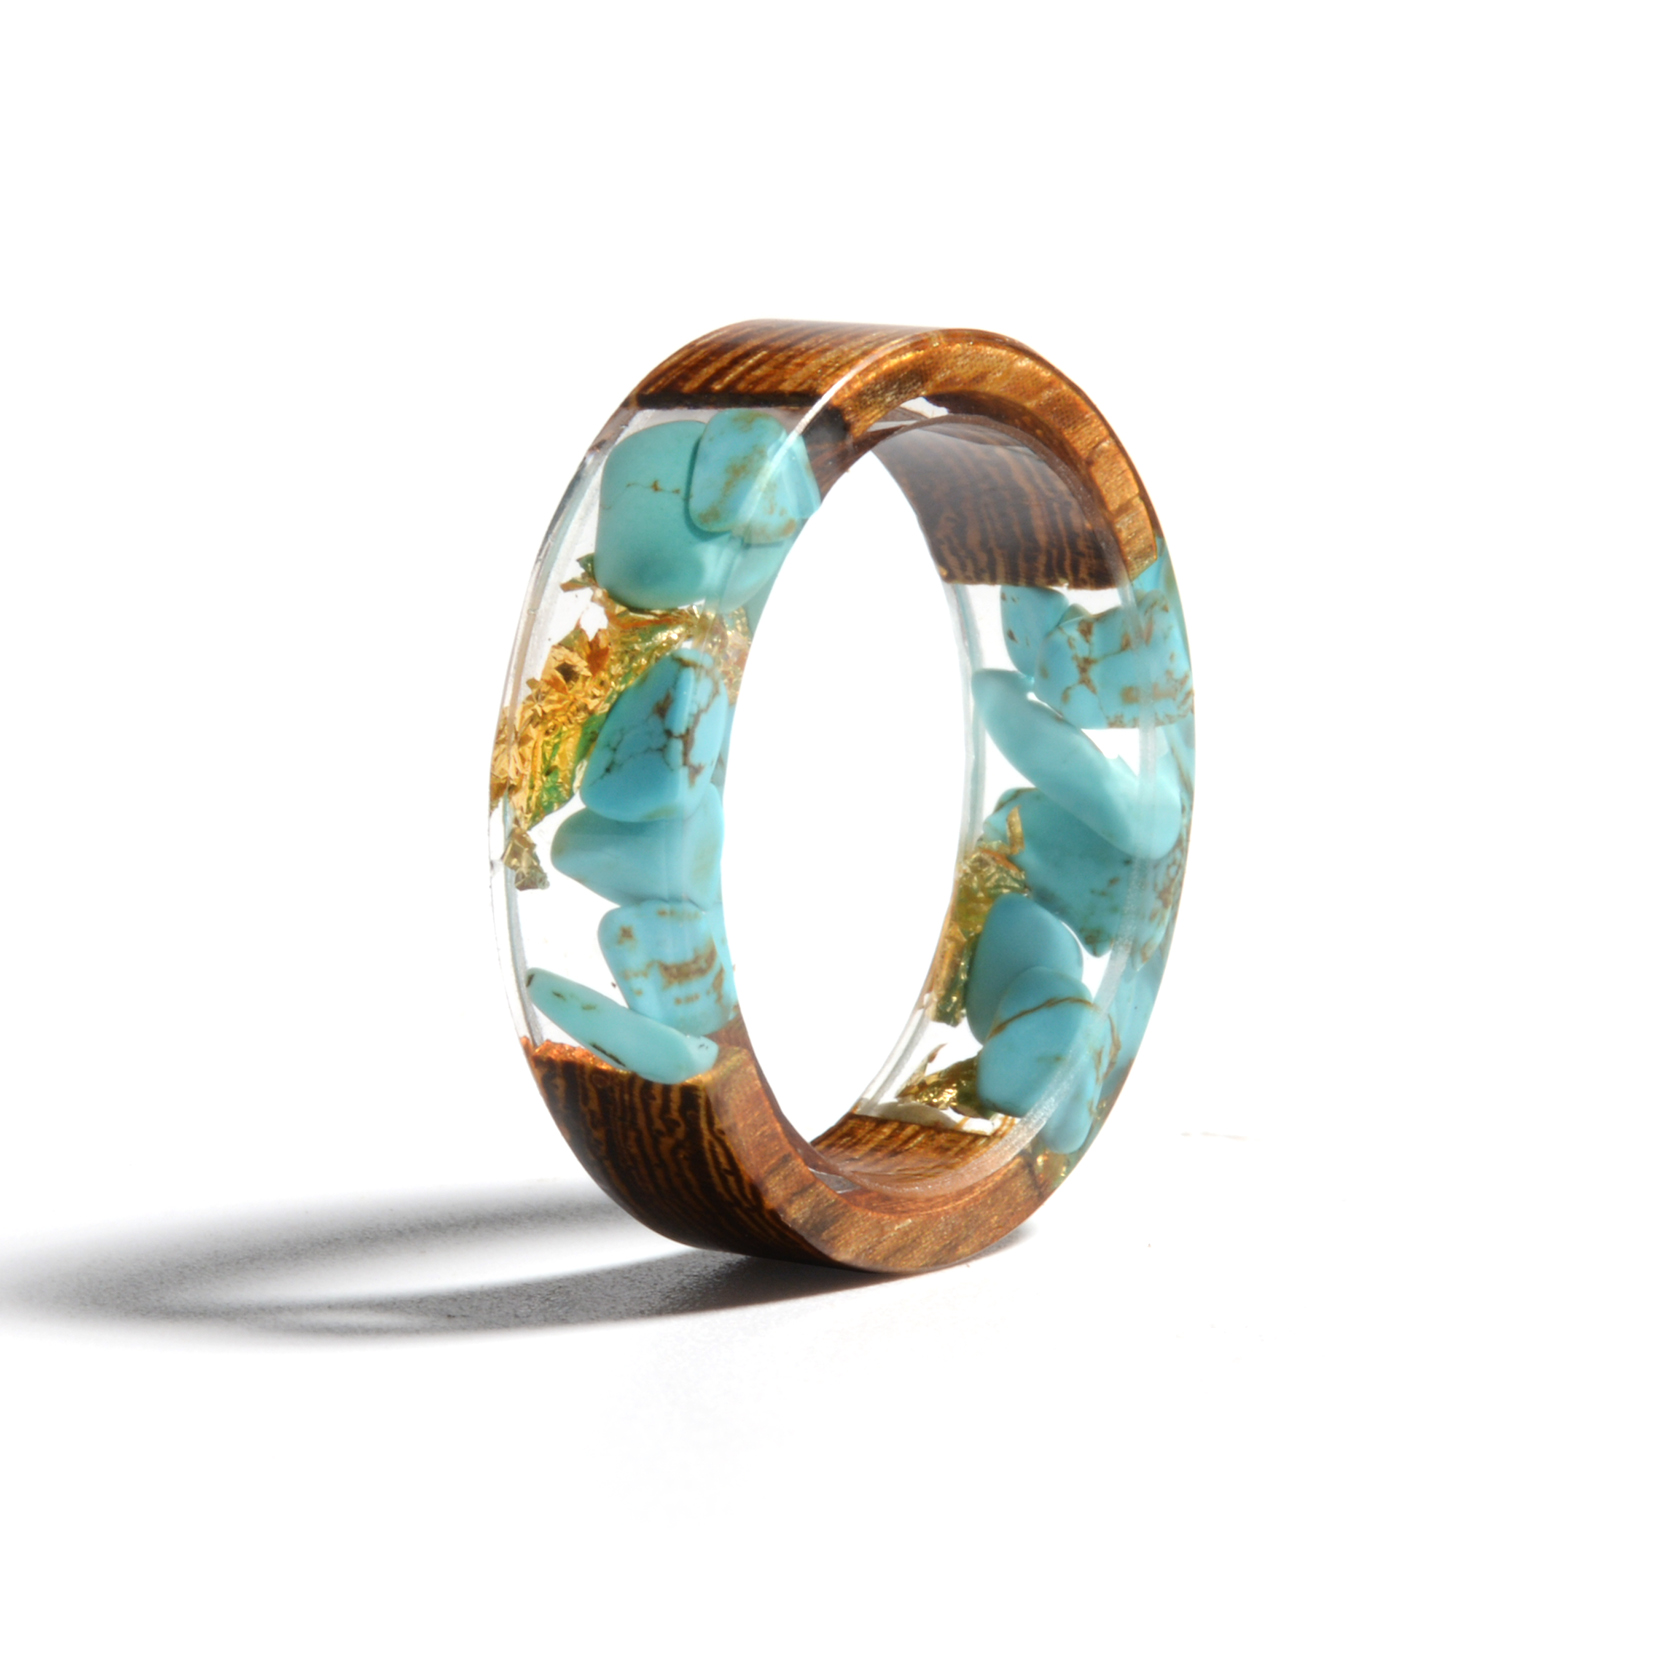 Handmade Wood Resin Ring Many Styles 30